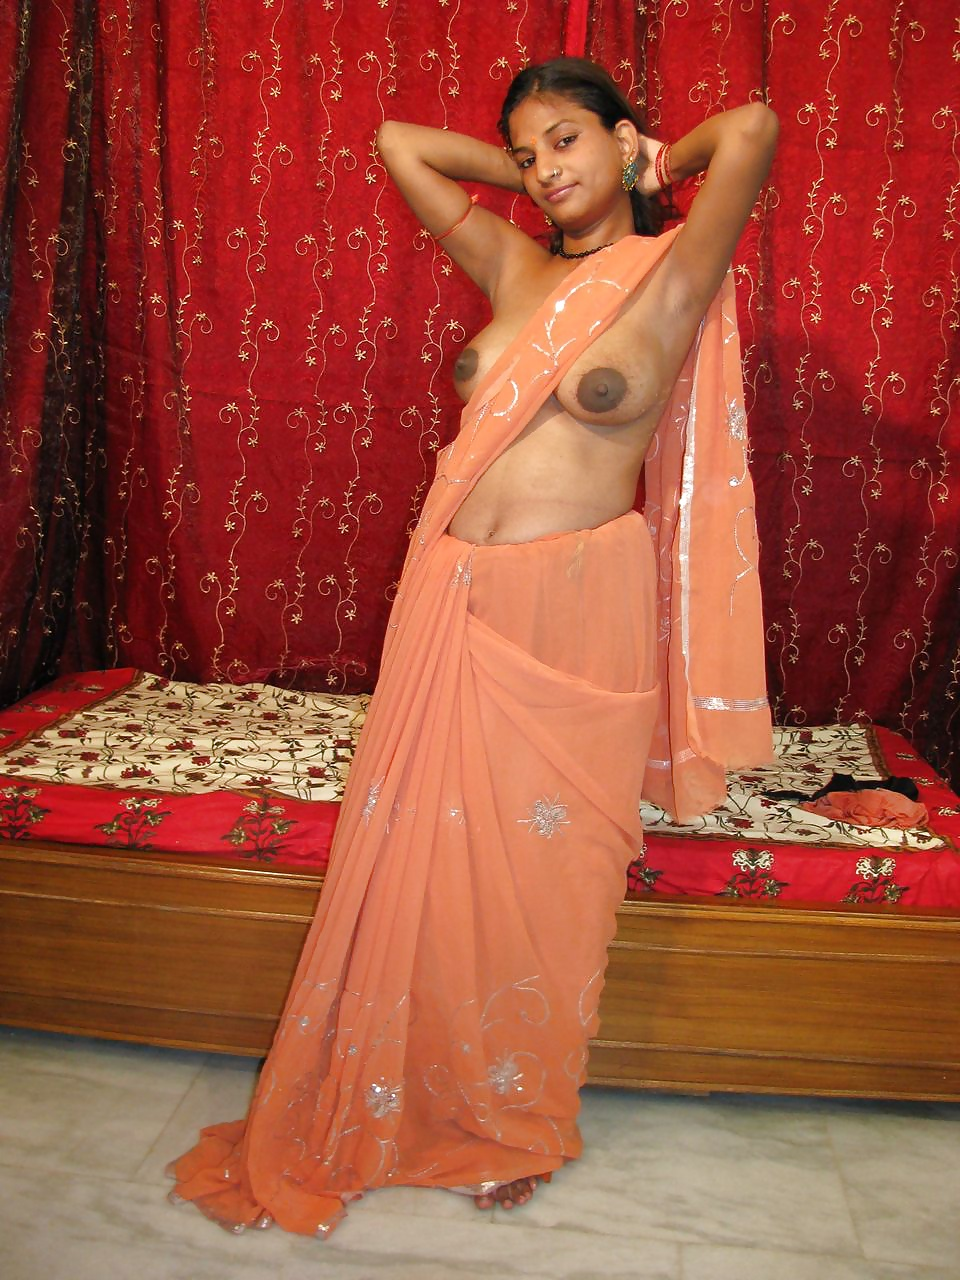 saree-stripped-very-sexy